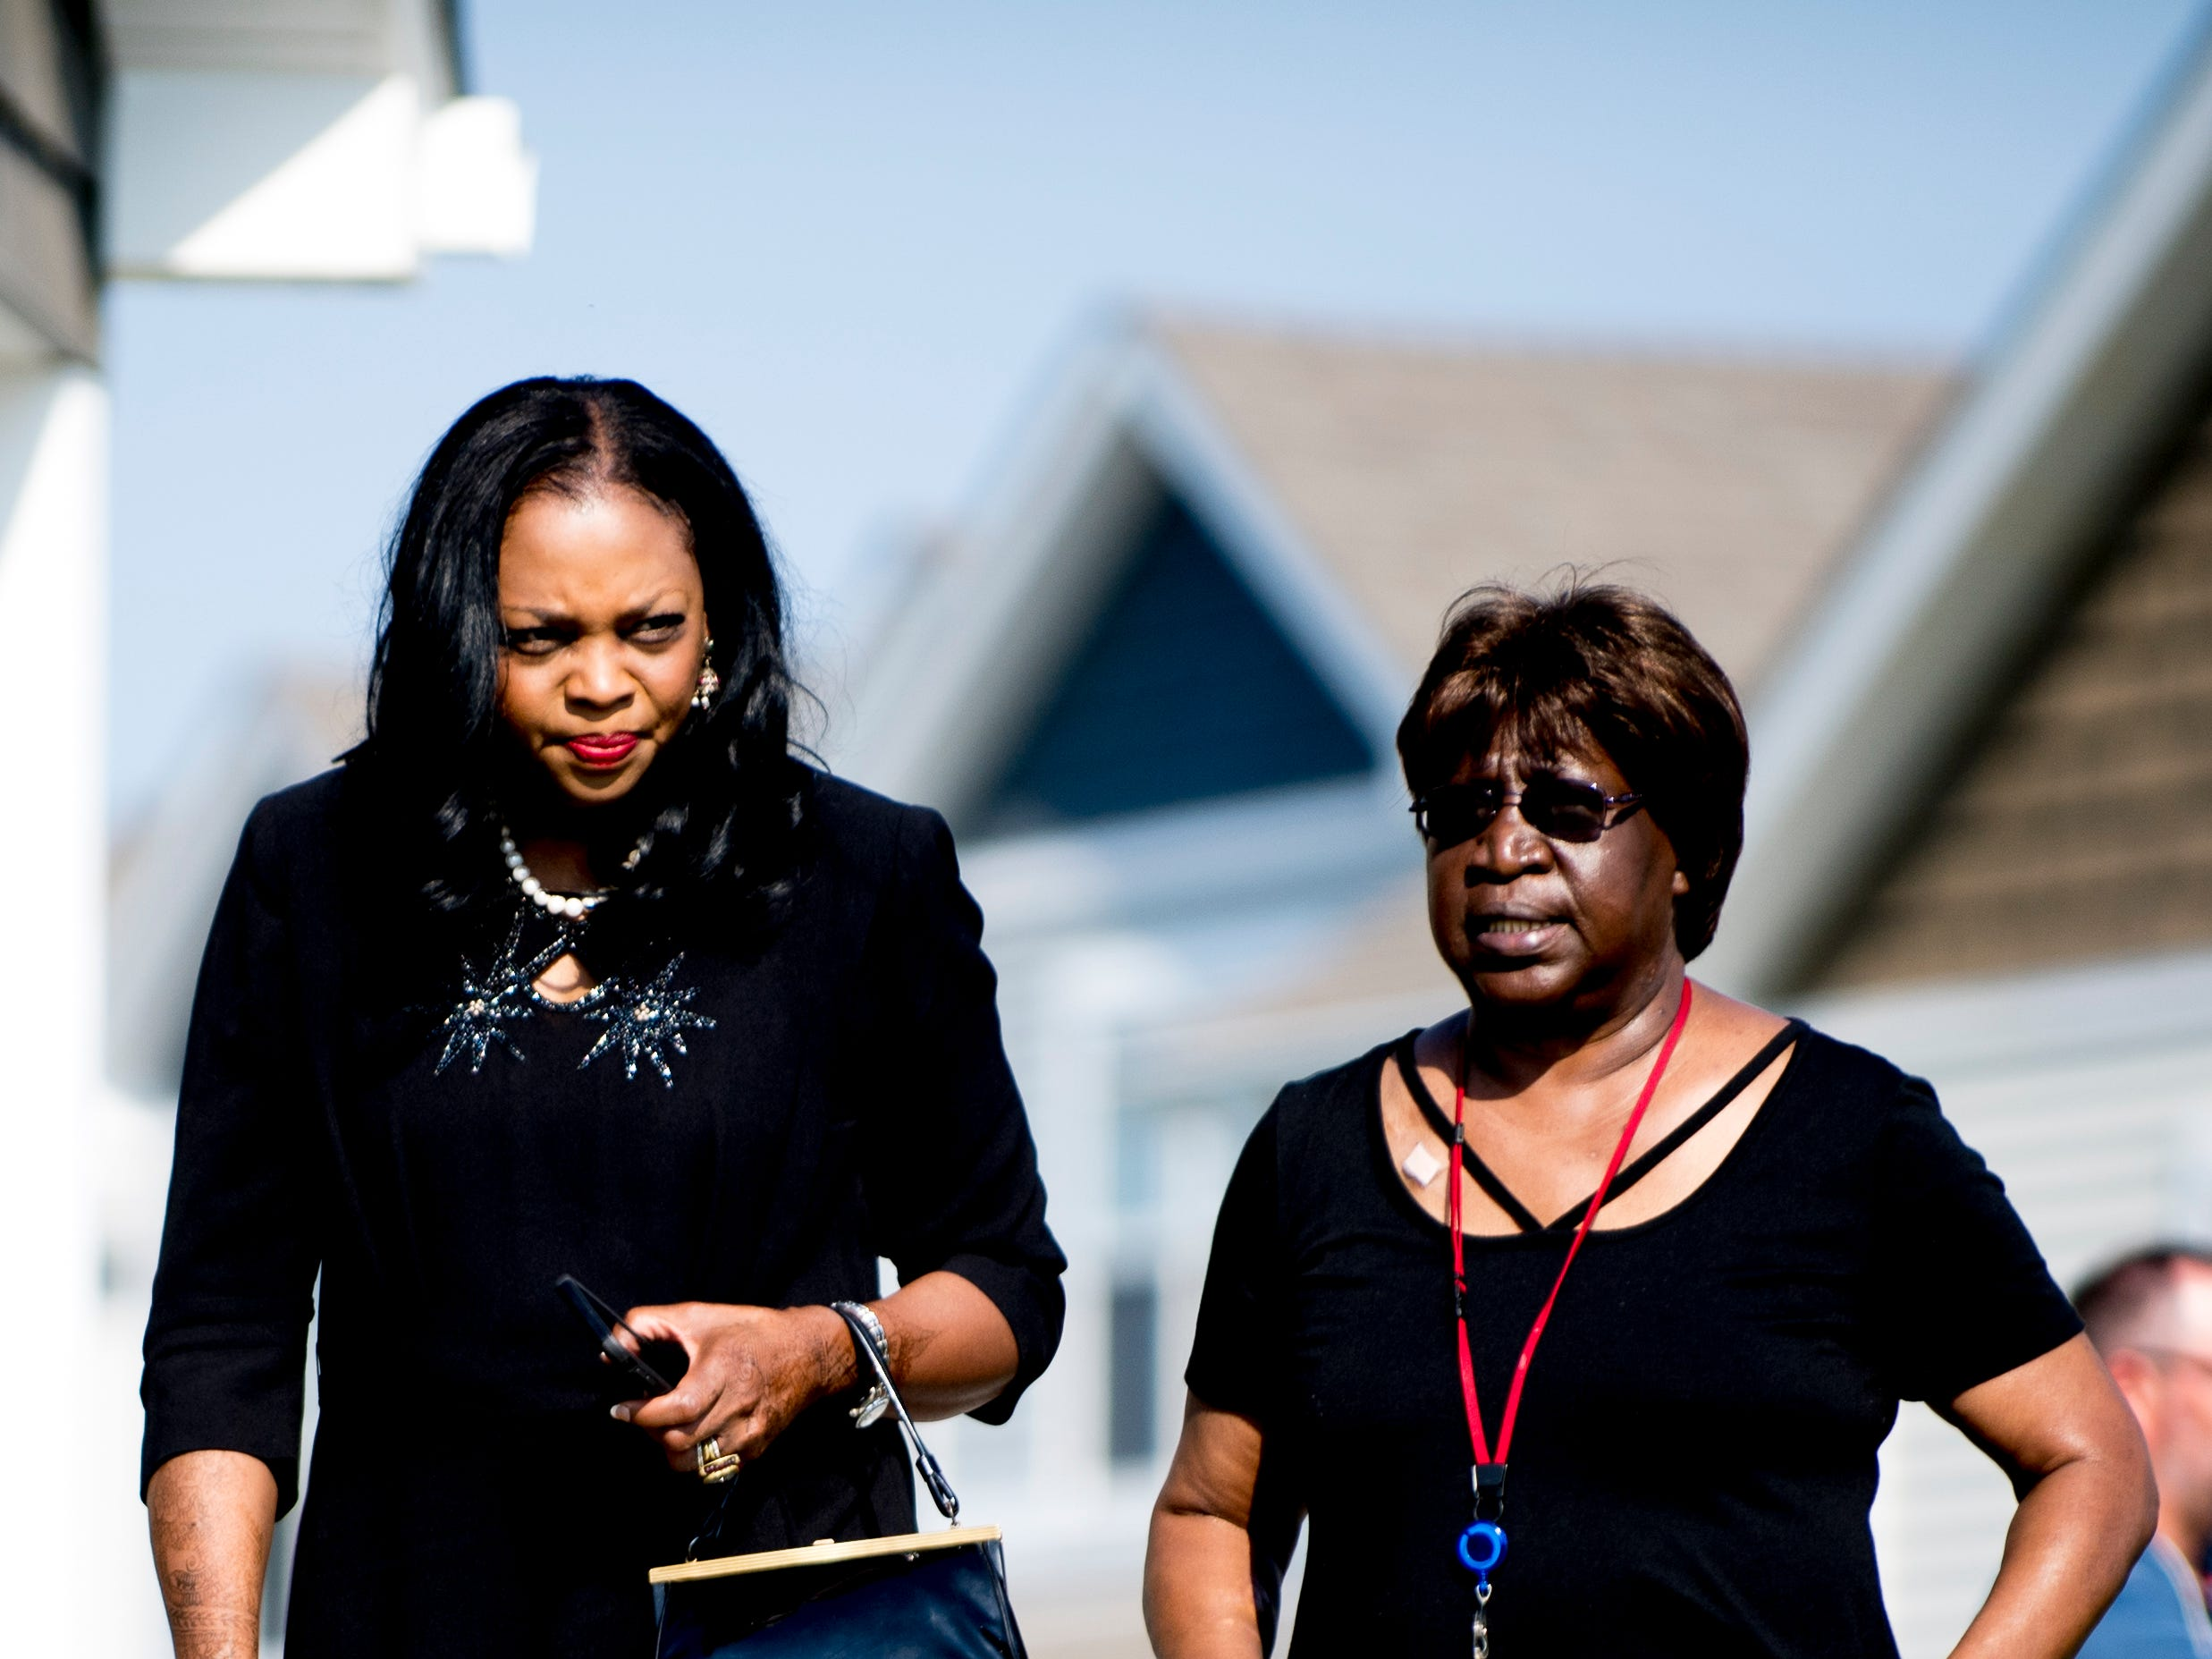 Knox County Commissioner Evelyn Gill and Gwen Winfrey, Community Development Senior Project Specialist, chat during the Five Points Phase 2 ribbon cutting ceremony in Knoxville, Tennessee on Wednesday, September 19, 2018. The 10-building, 84-unit affordable housing complex has been part of Mayor Rogero's focus on affordable housing.